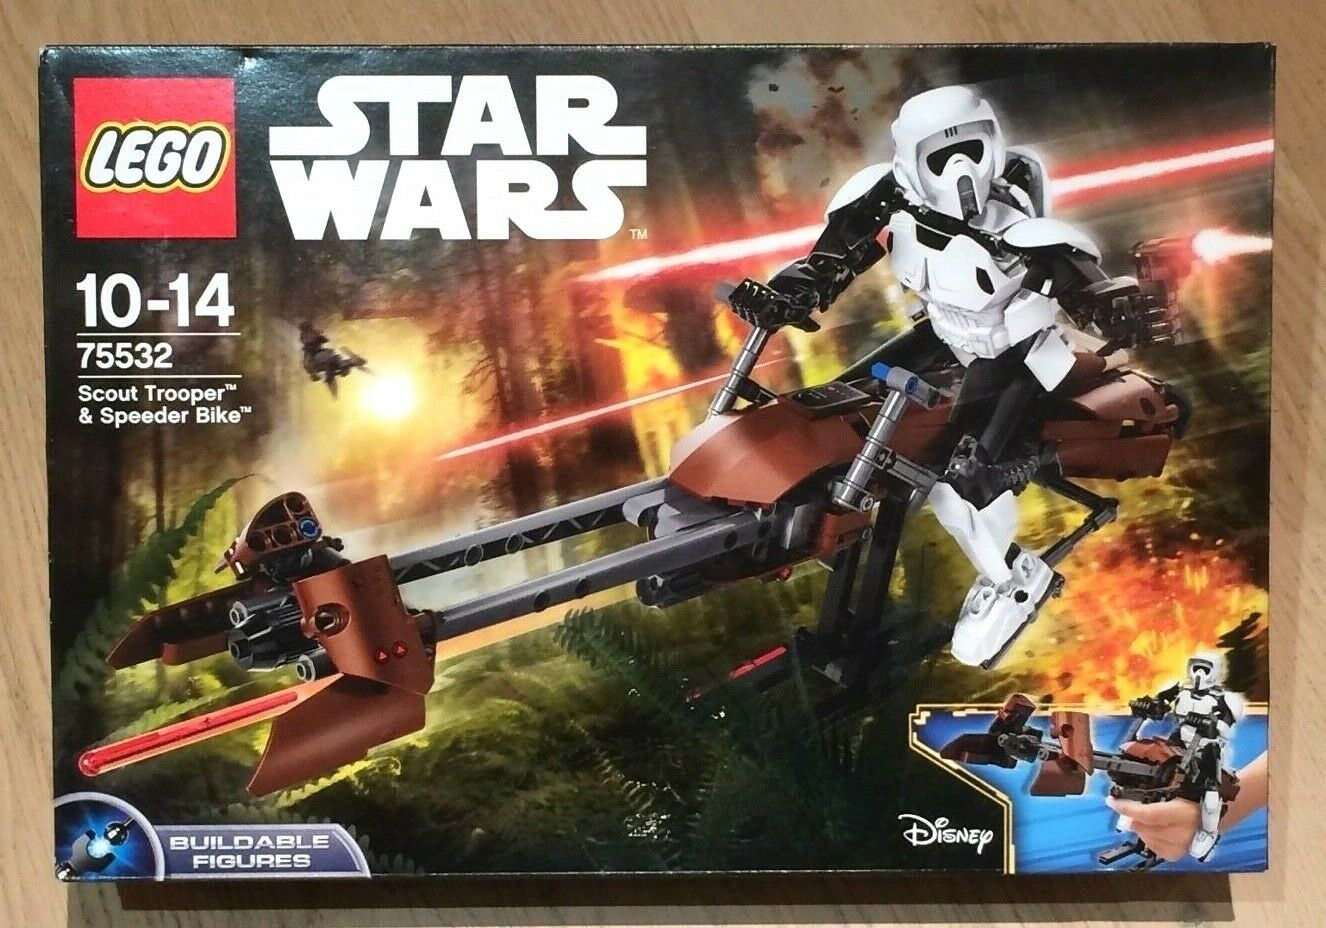 LEGO STAR WARS 75532 Scout Trooper & Speeder Bike NEWNEUF Buildable Figure JEDI